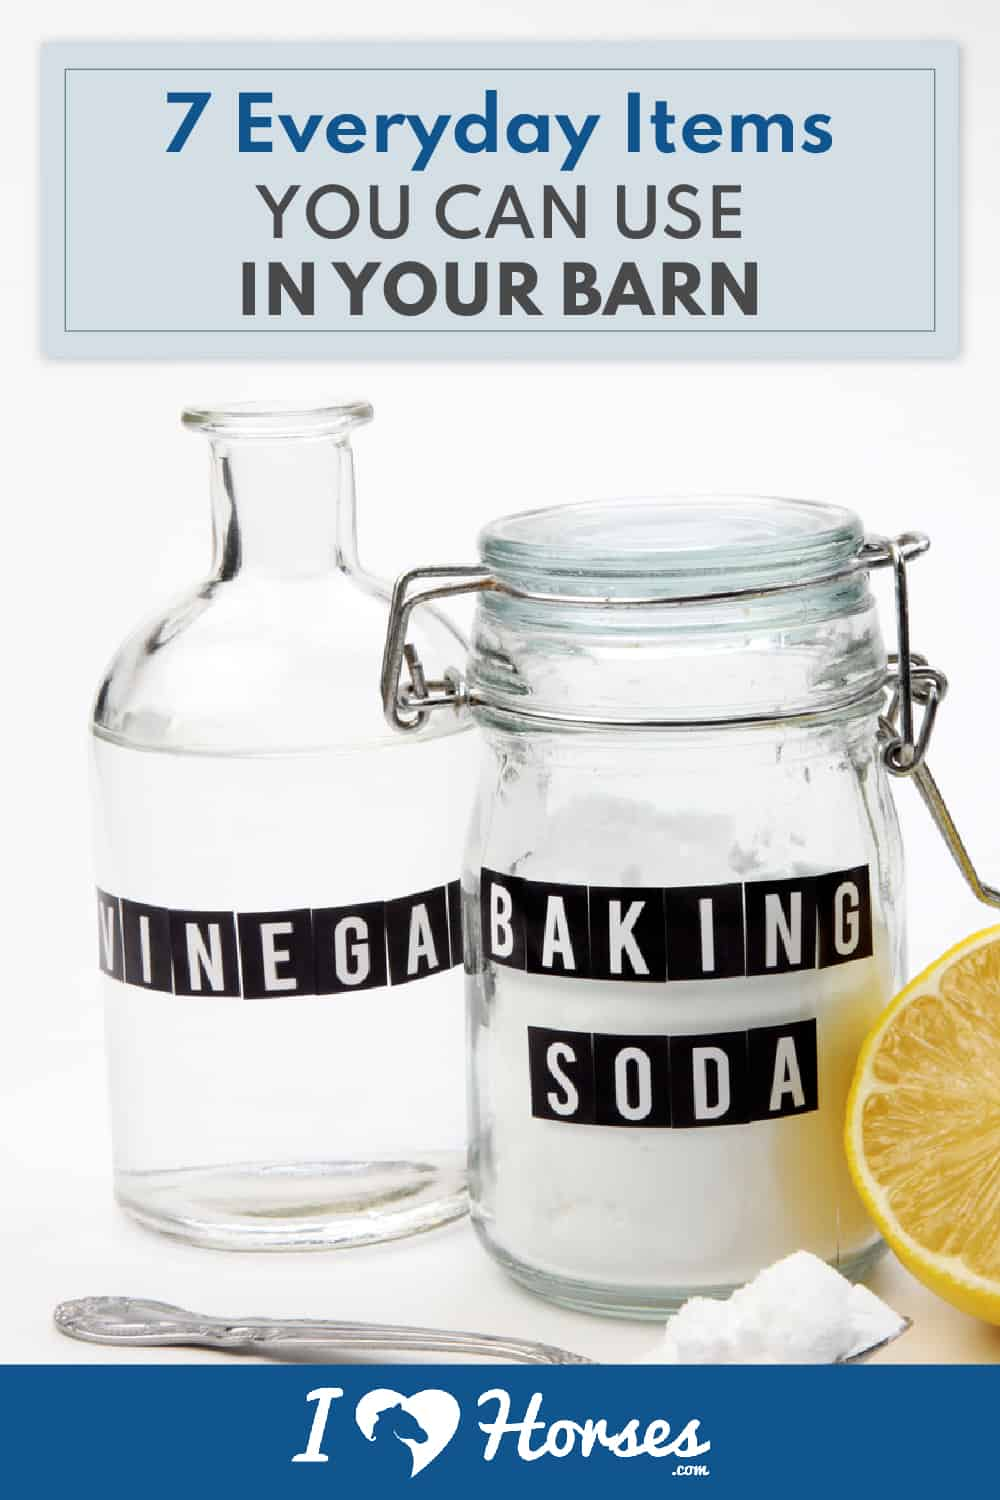 everyday items for your barn